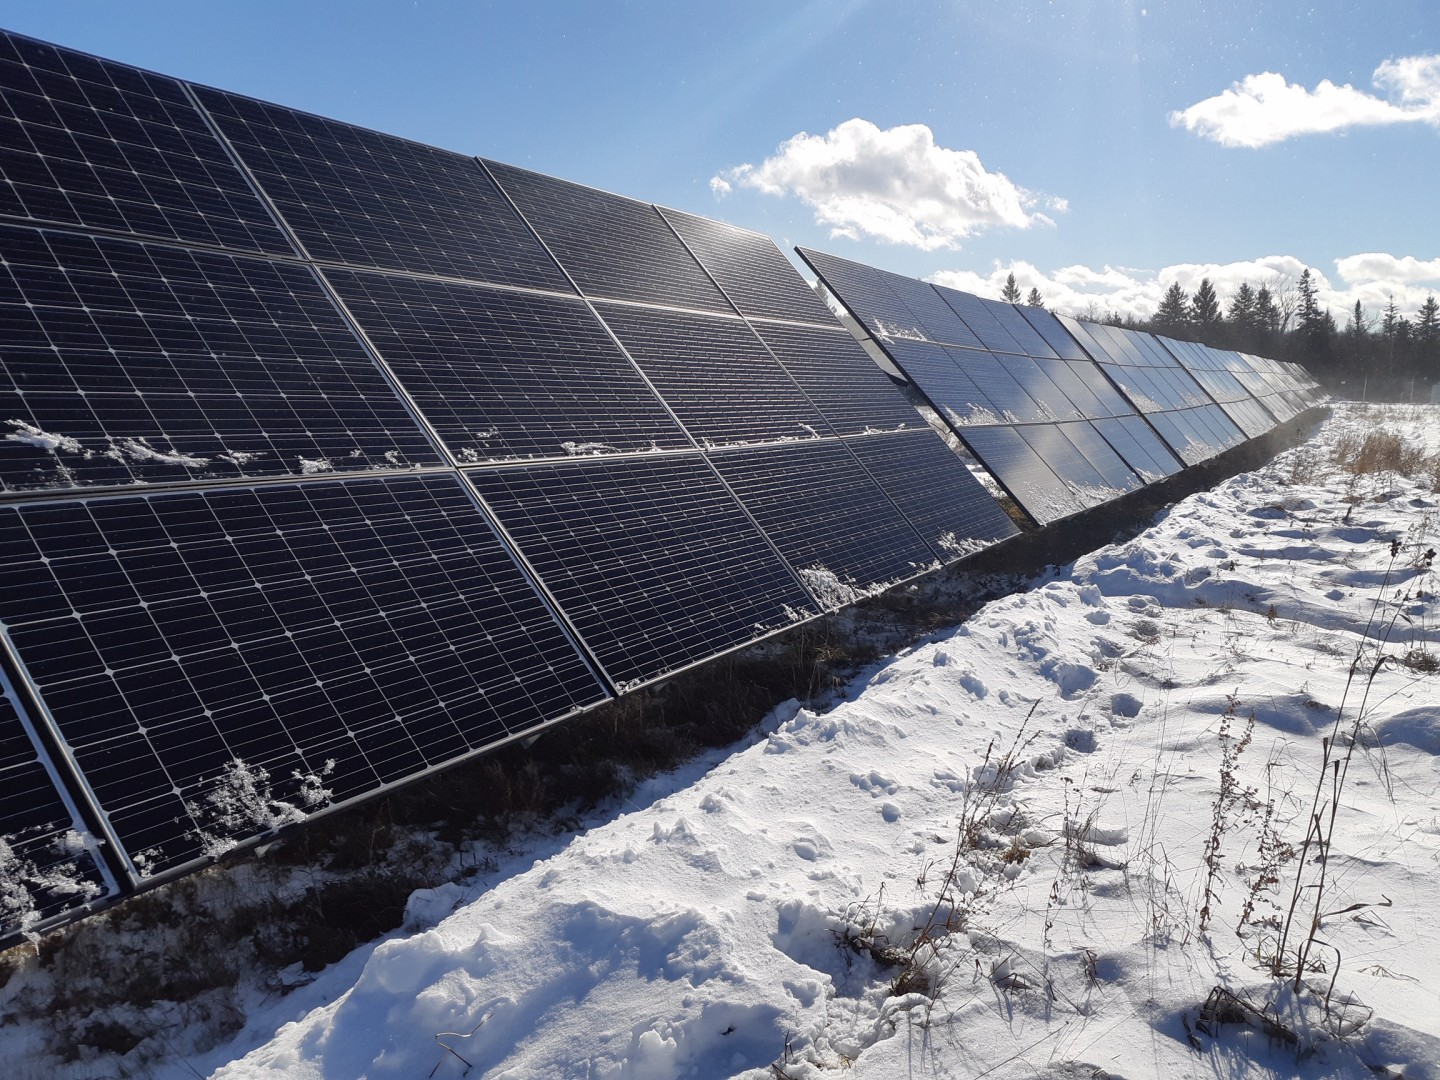 Elemental Energy Inc,, the British Columbia-based renewable energy developer and investor, owns the installation, which will stand as the first merchant PV project located in Alberta. Image: GP Joule